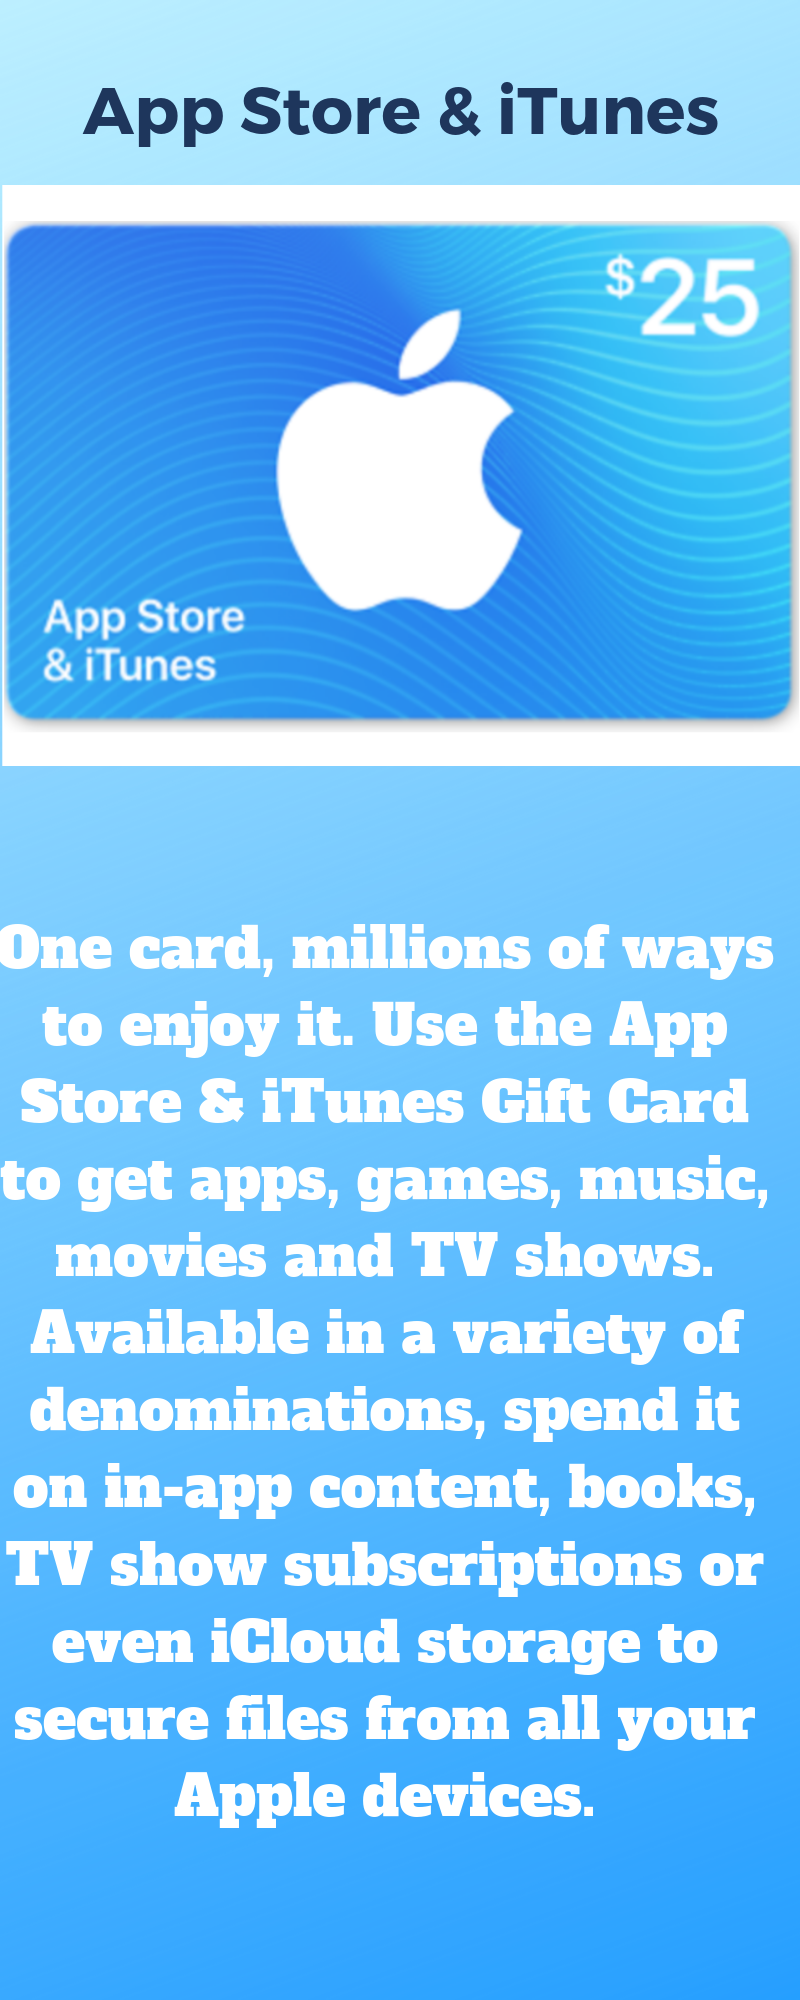 How Do I Get To The App Store In Itunes